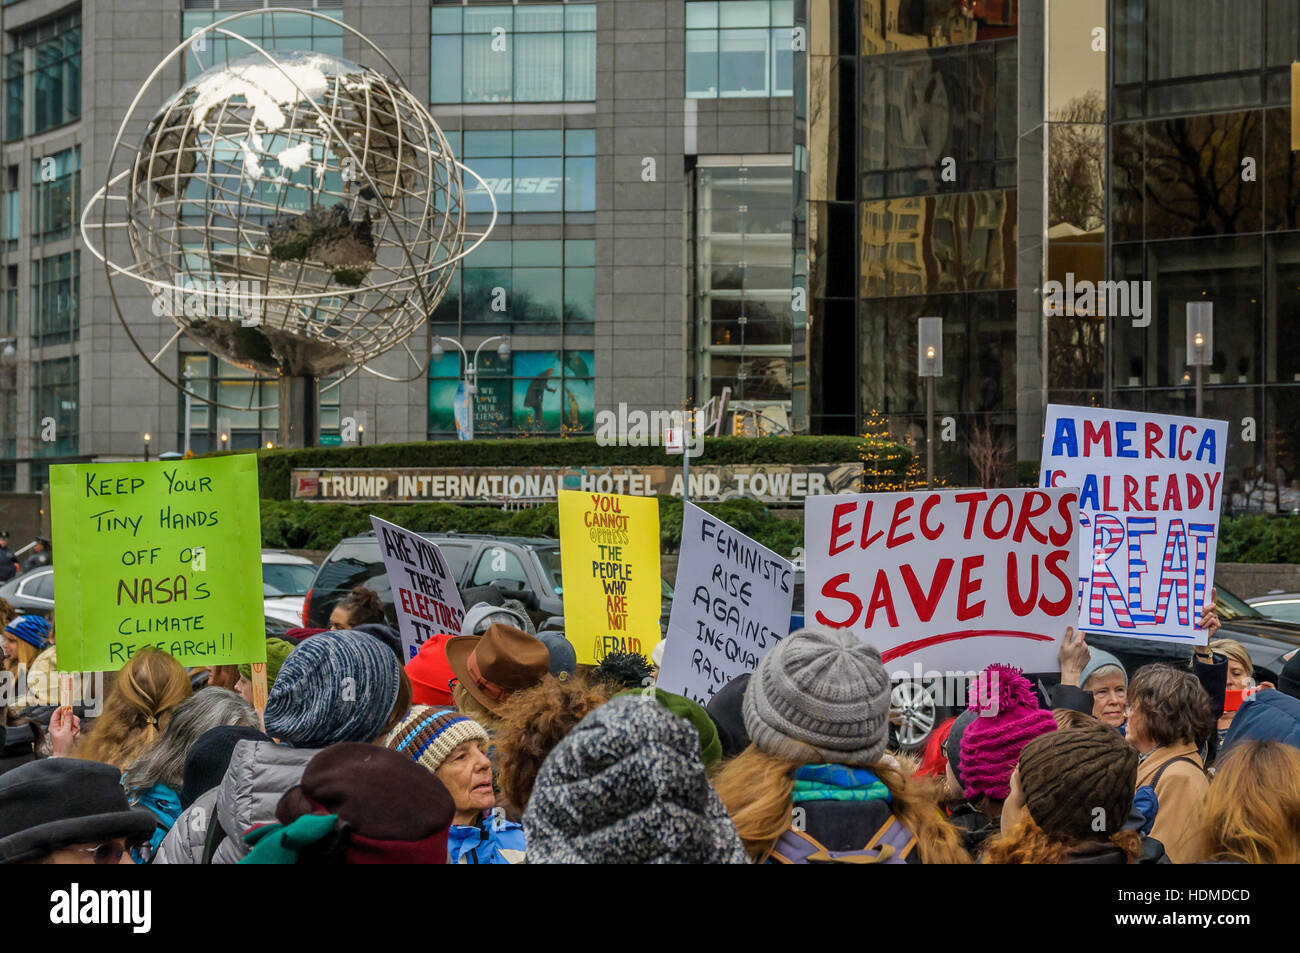 New York, USA. 12th Dec, 2016. Women and Allies, Nationwide Protest in New York City - On the 12th of December, - Stock Image